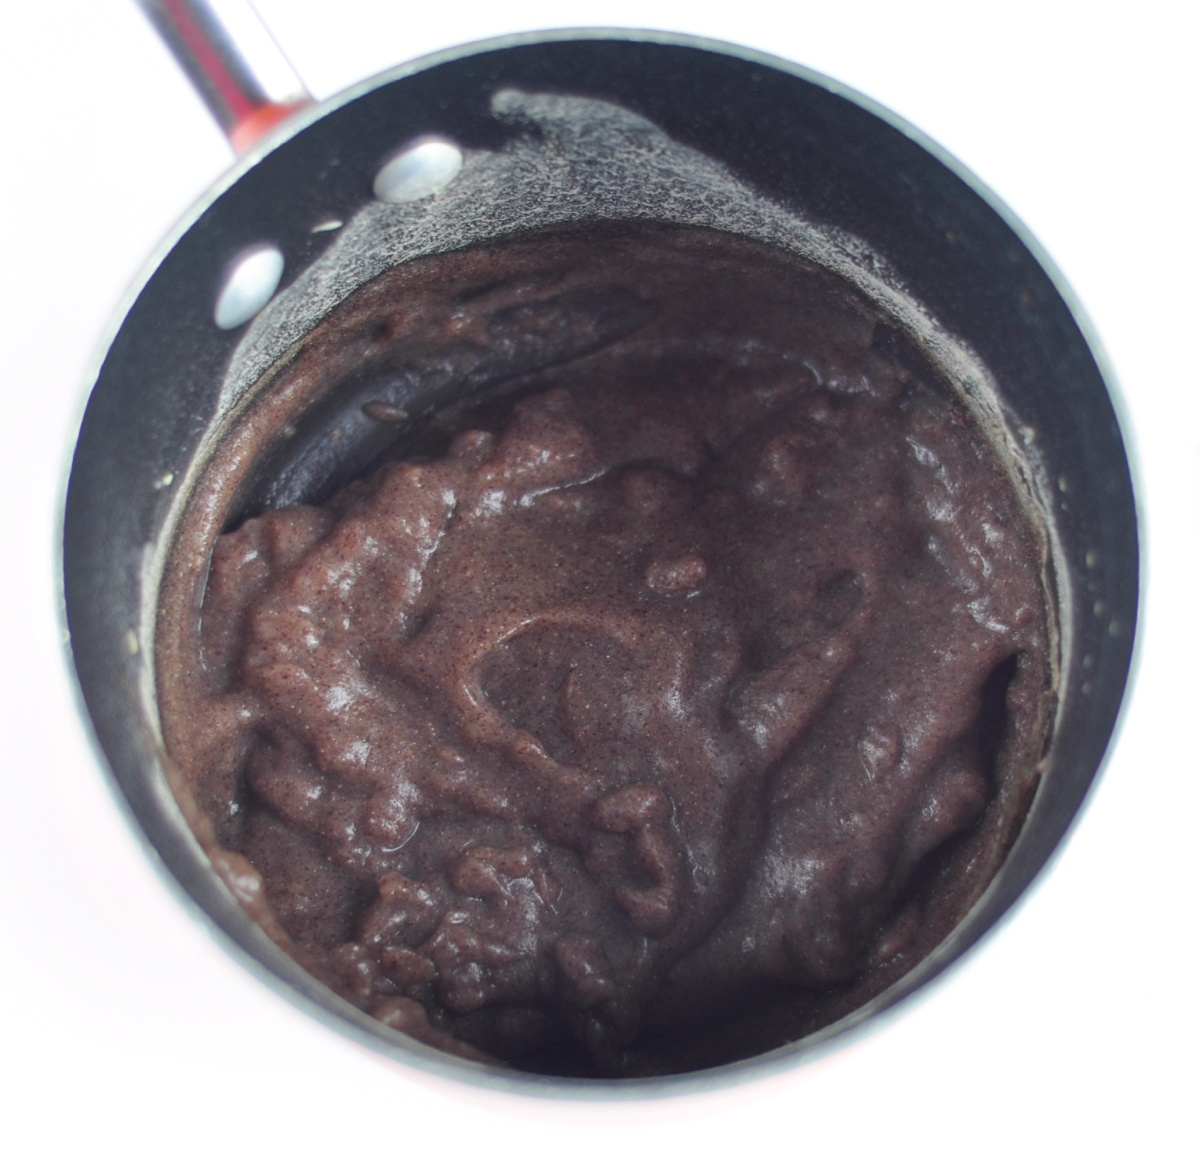 preparation of ragi malt